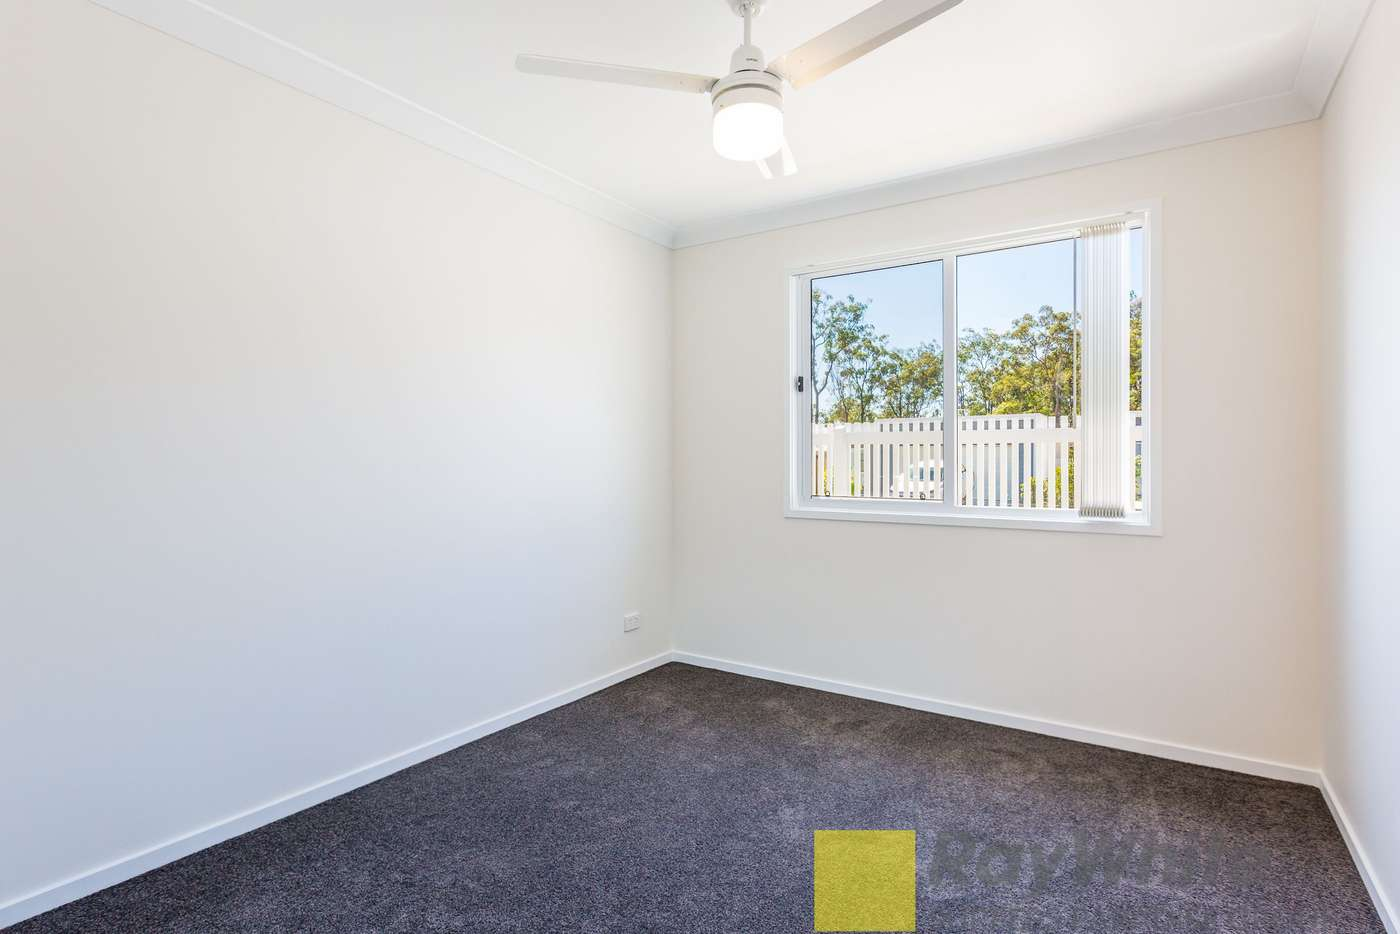 Sixth view of Homely house listing, 1 Price Court, Pimpama QLD 4209